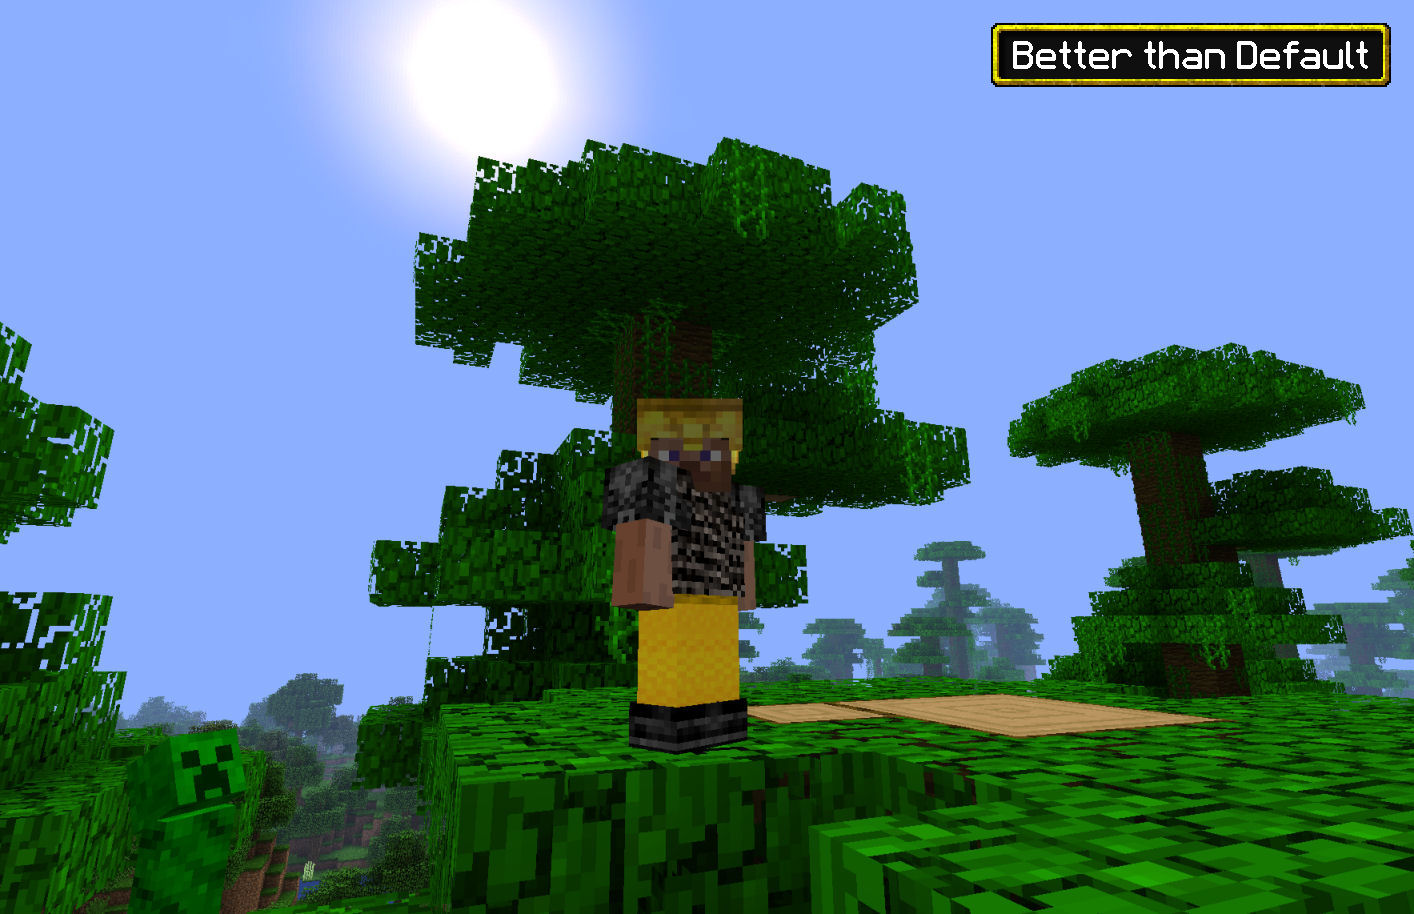 fbfe7  Better than default texture pack 1 [1.7.2/1.6.4] [16x] Better than Default Texture Pack Download